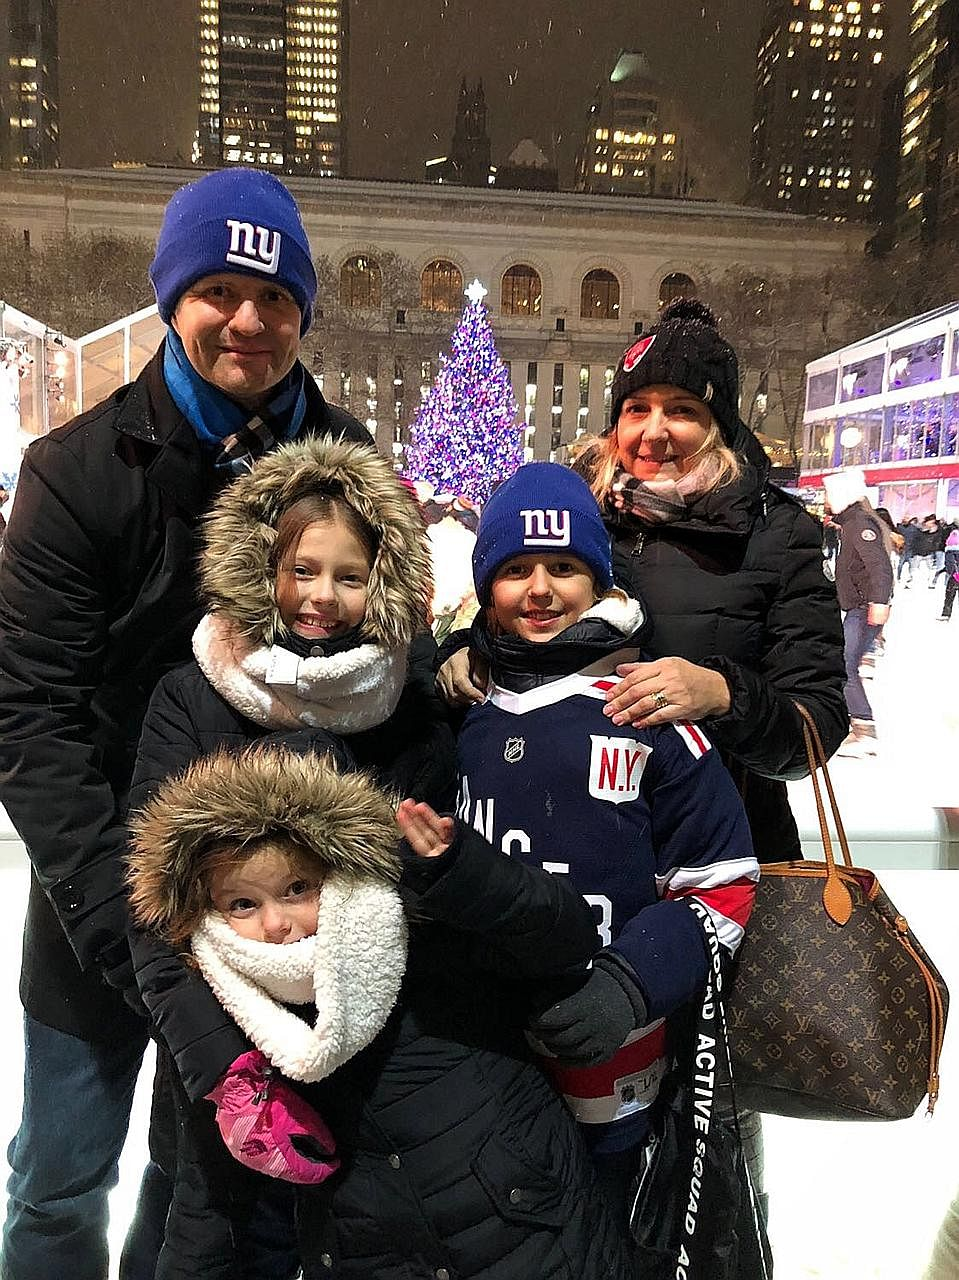 ChildAid star Lilo Baier (second from left) with her family - father Wolfgang Baier, sister Luna, brother Luca and mother Nicole - in New York. Lilo performed in the prestigious Carnegie Hall on Dec 16, singing to a sold-out audience How Far I'll Go,